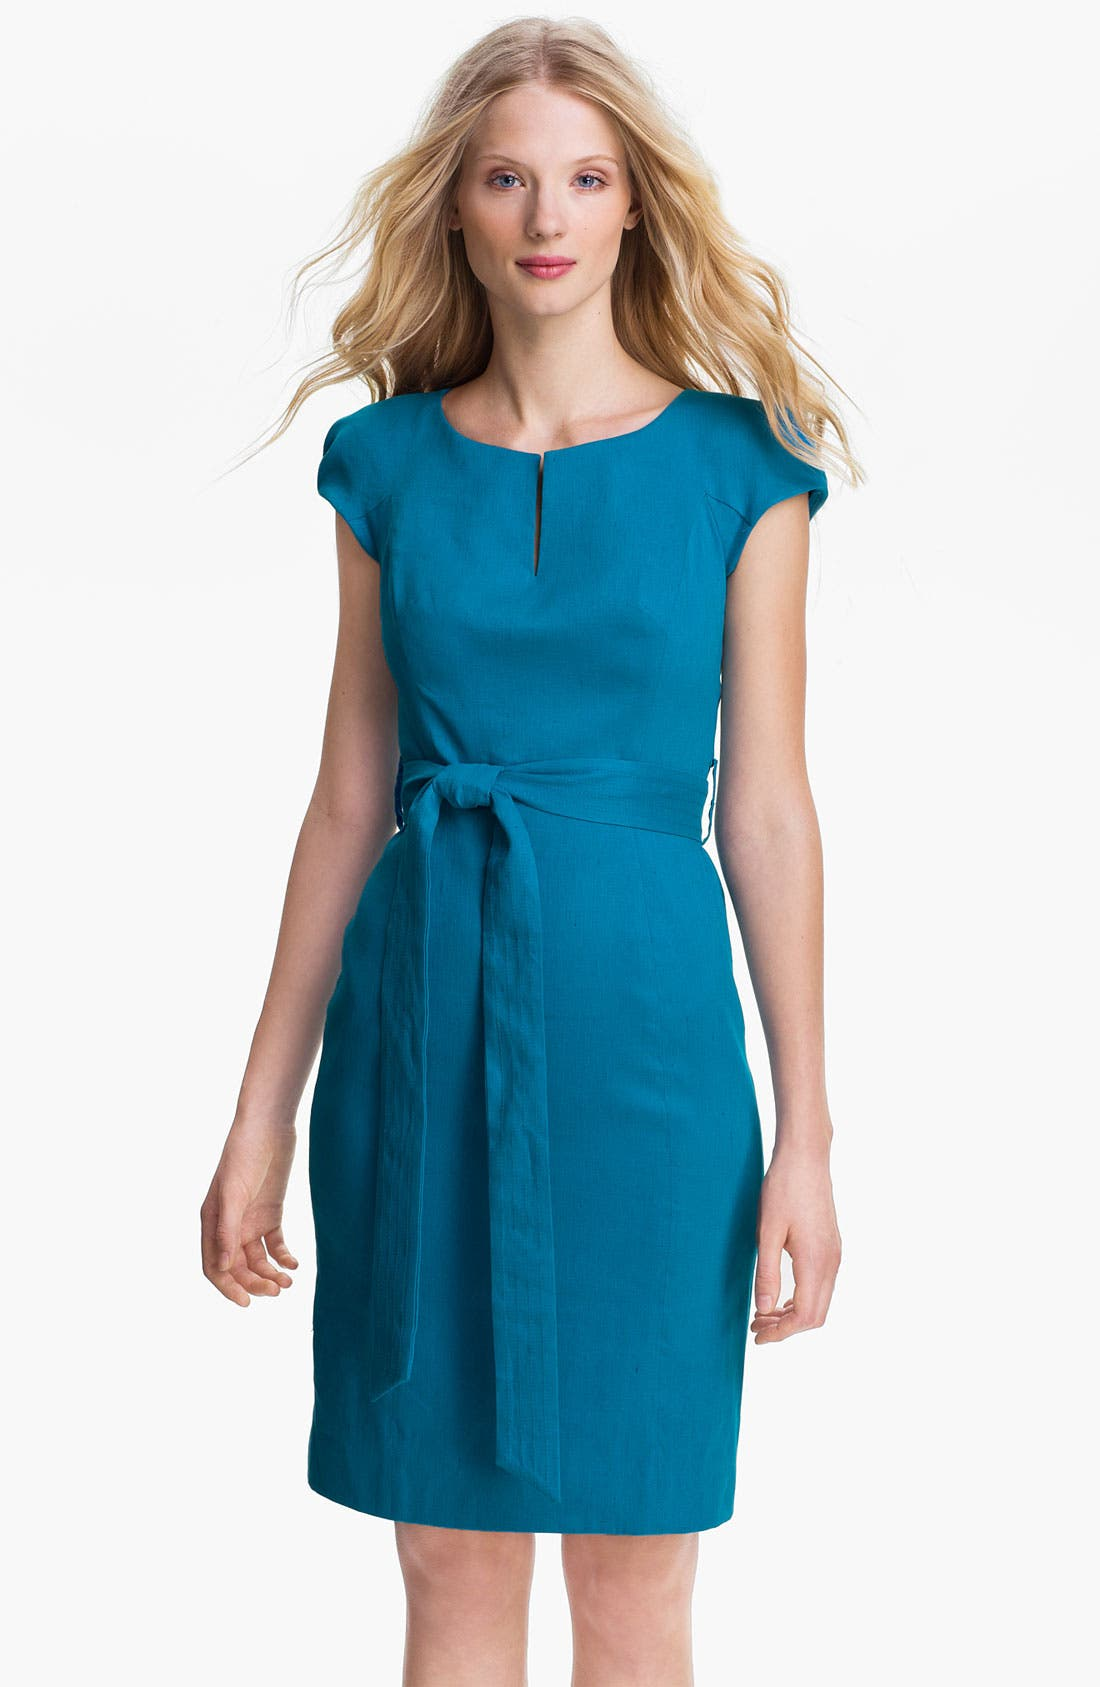 Alternate Image 1 Selected - Milly 'Slim Haley' Linen Blend Sheath Dress